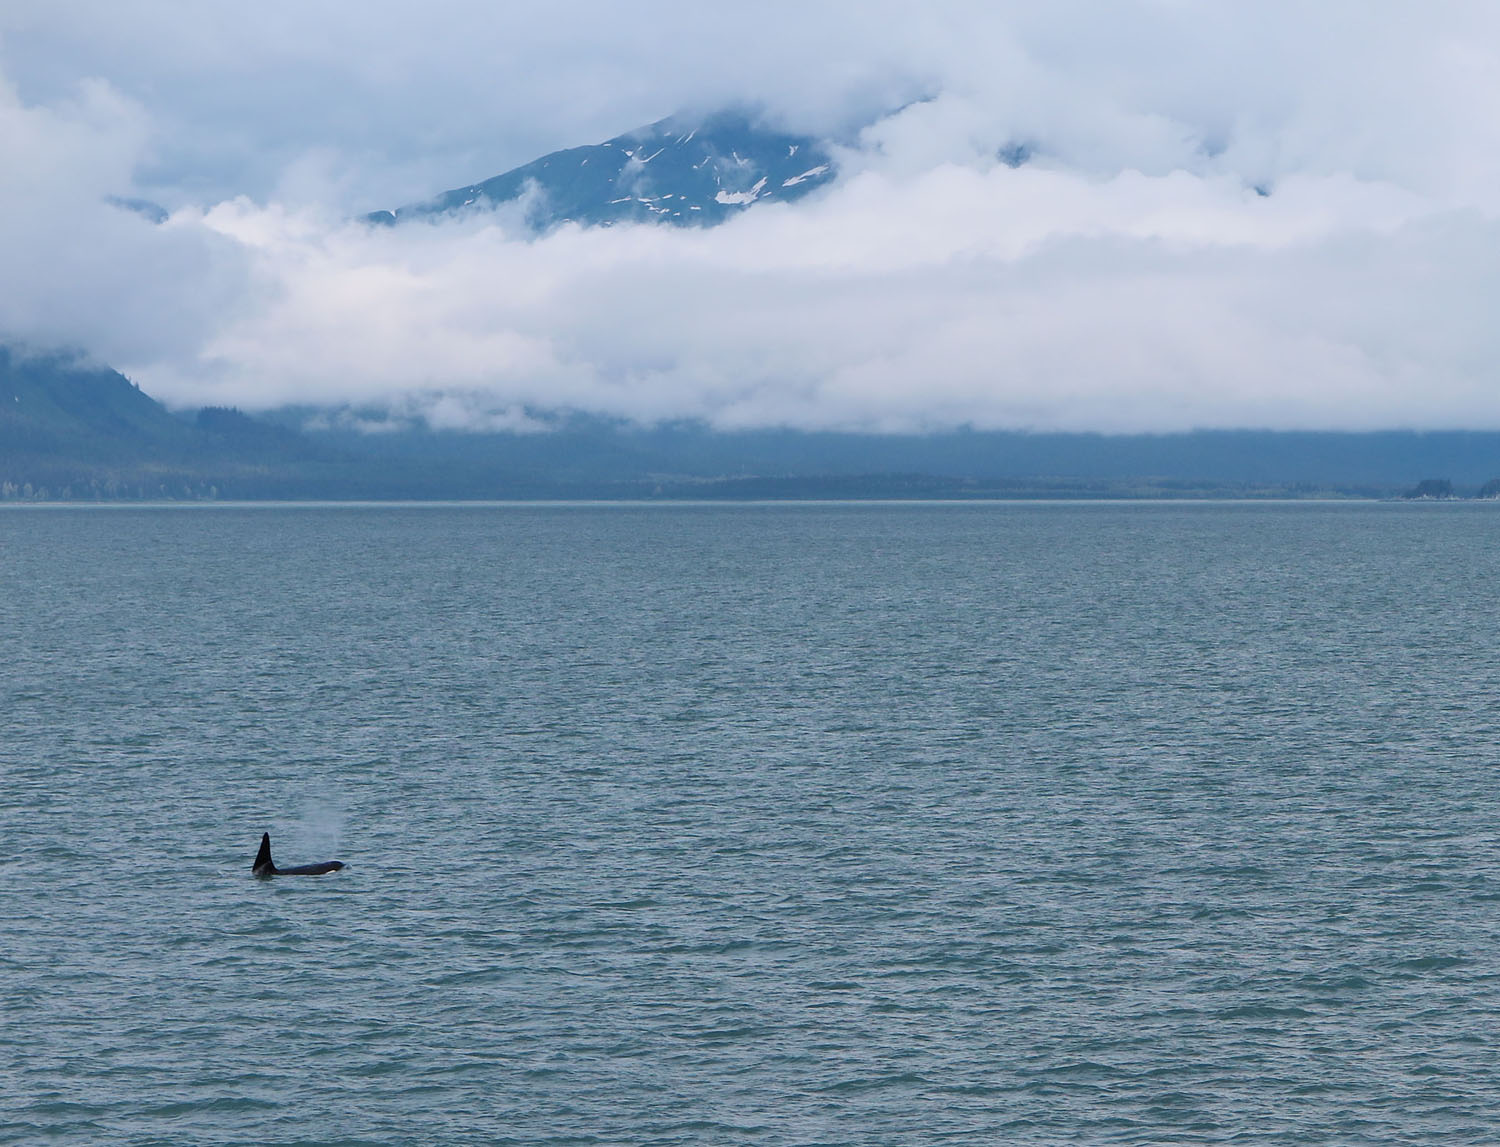 Alaska-State-Ferry-Inside-Passage-Scenery-Orca